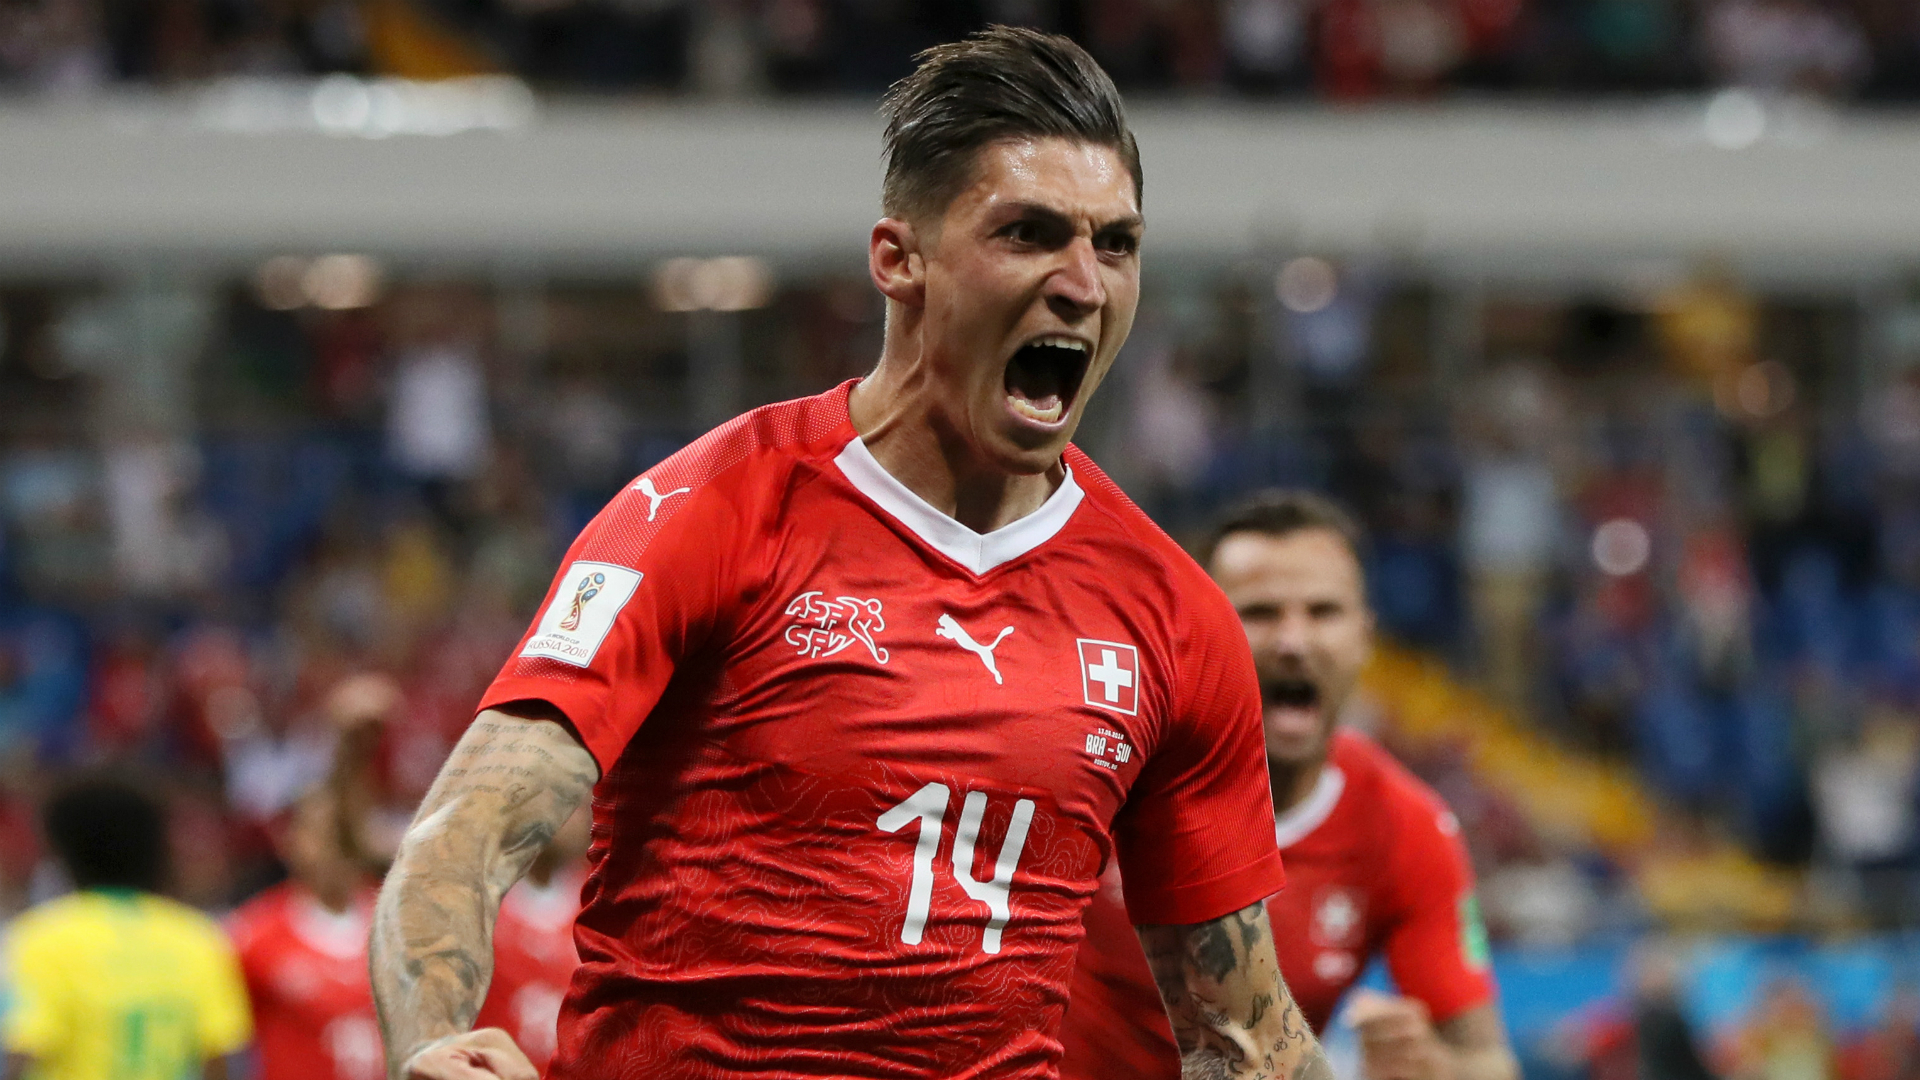 World Cup big guns continue to struggle as Brazil draws with Switzerland